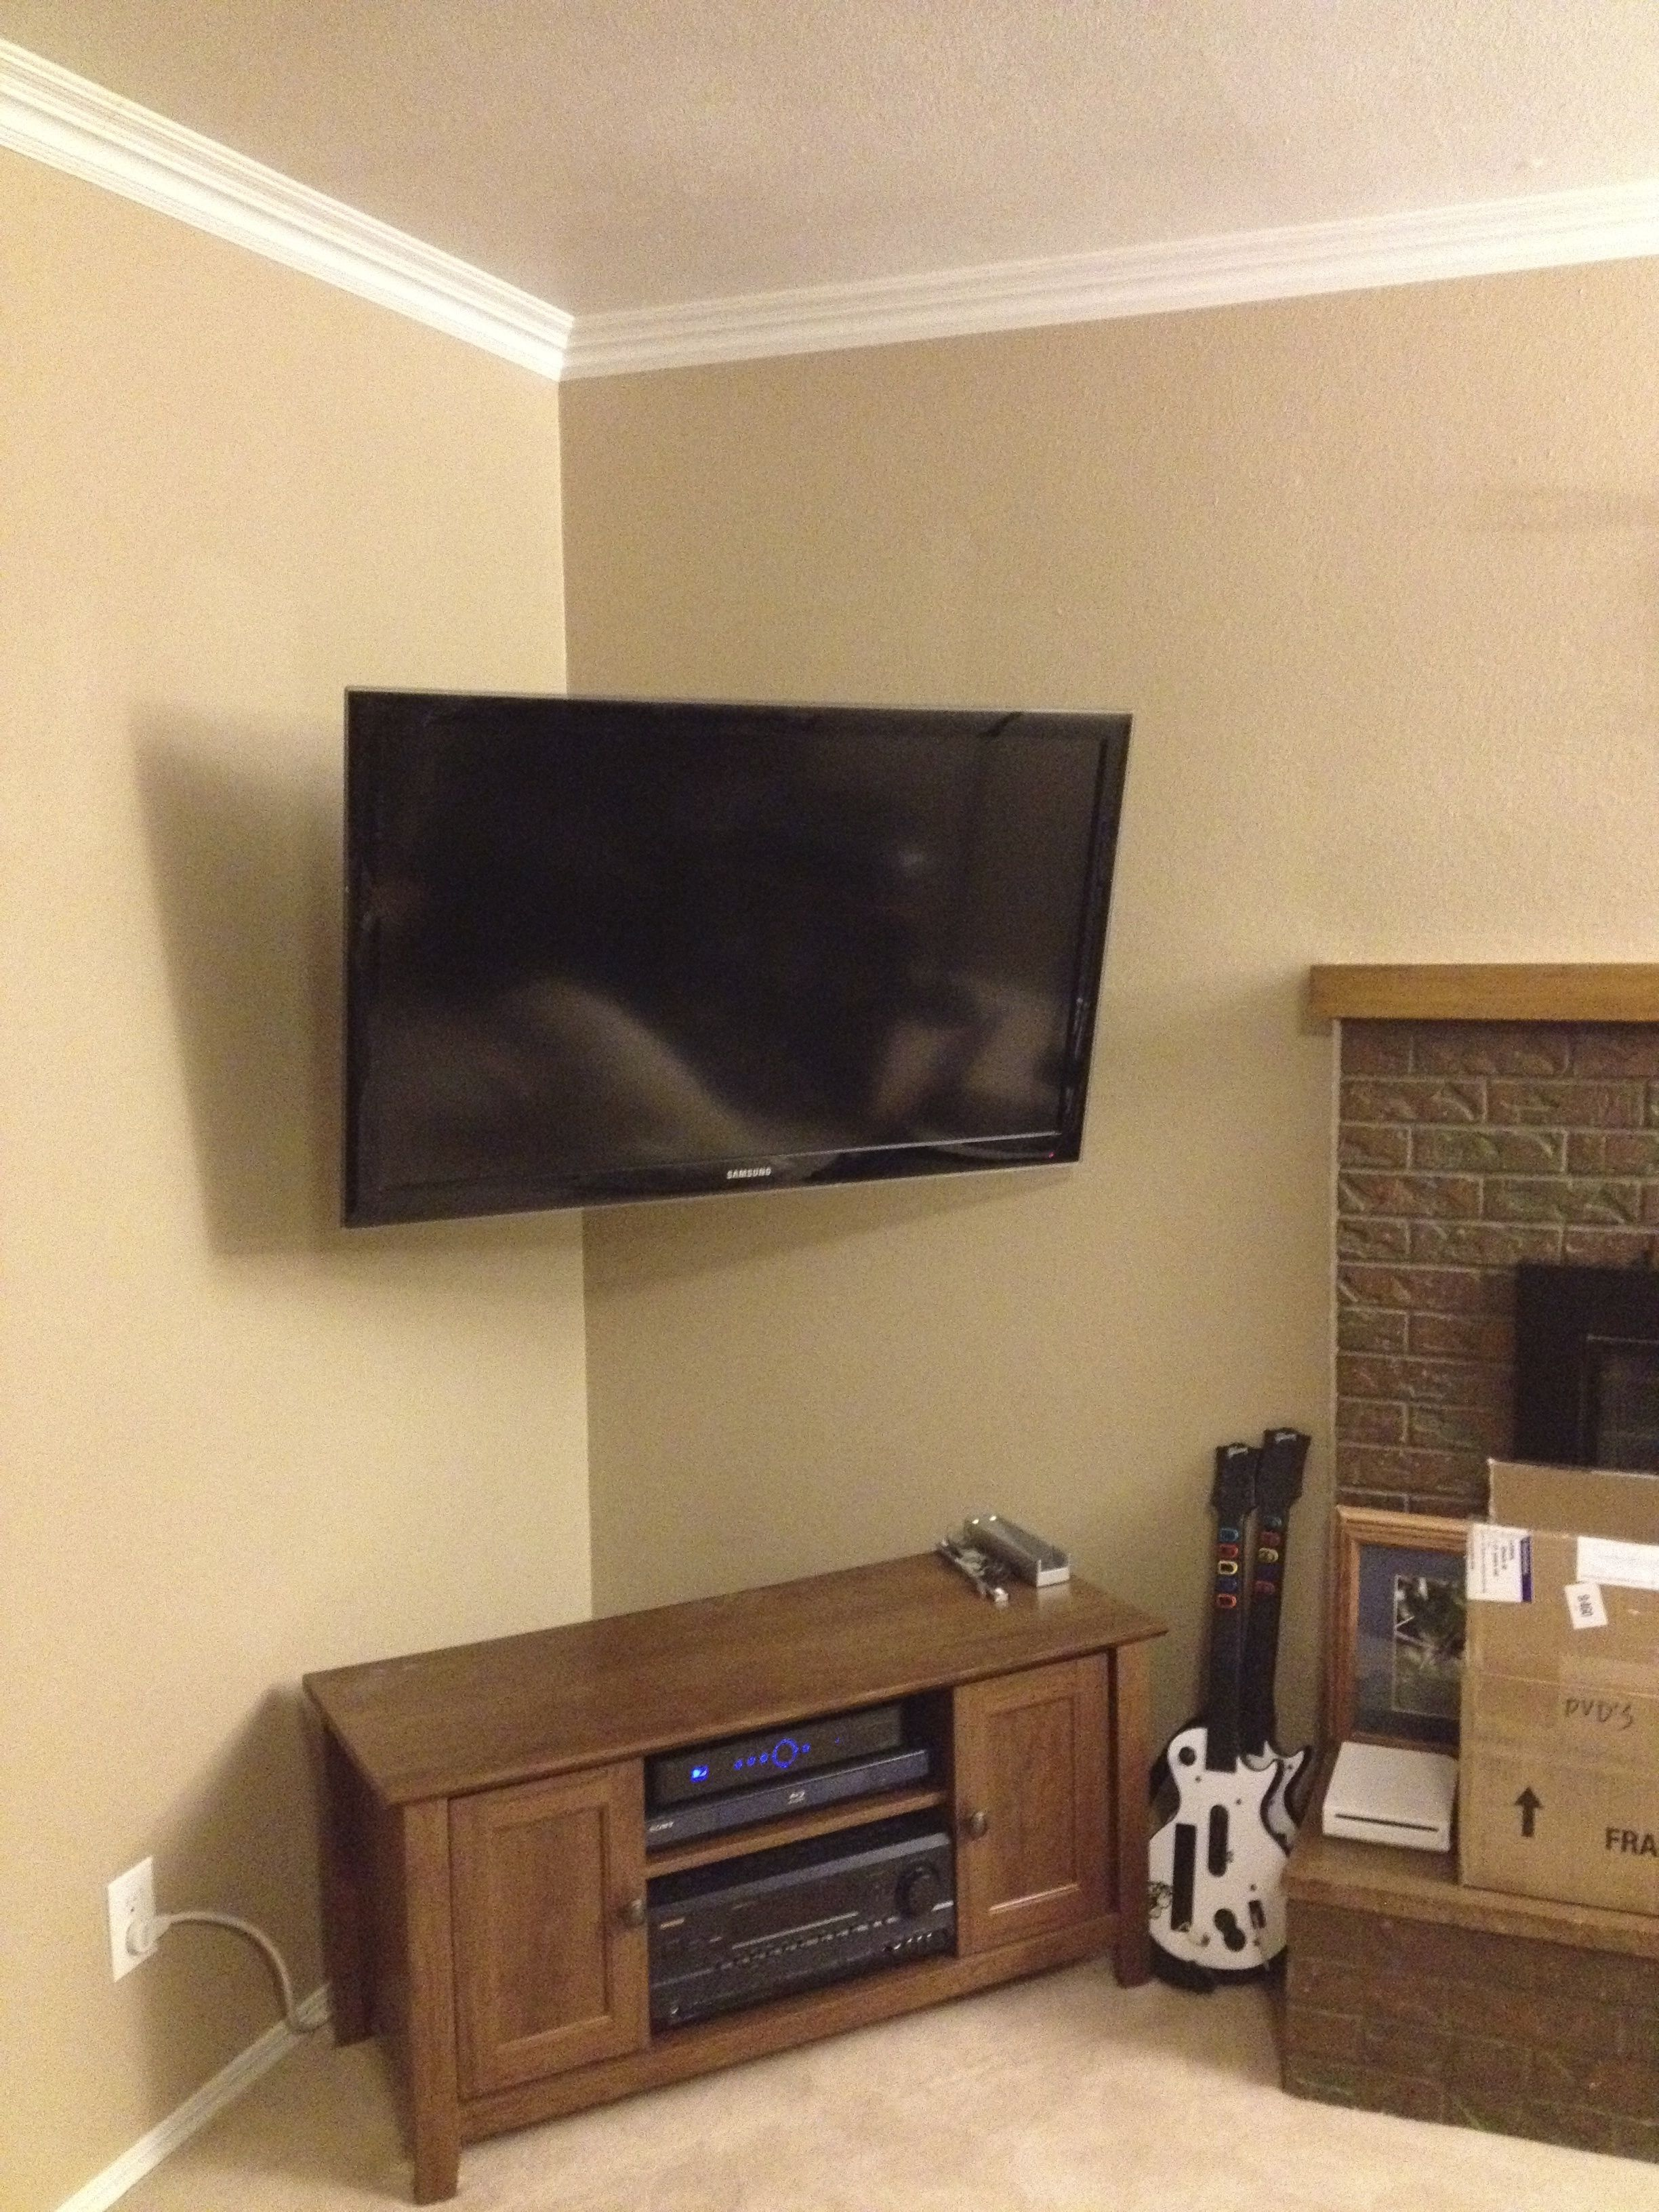 Corner Mounted Tv With The Wires Hidden Adds So Much Space In Your